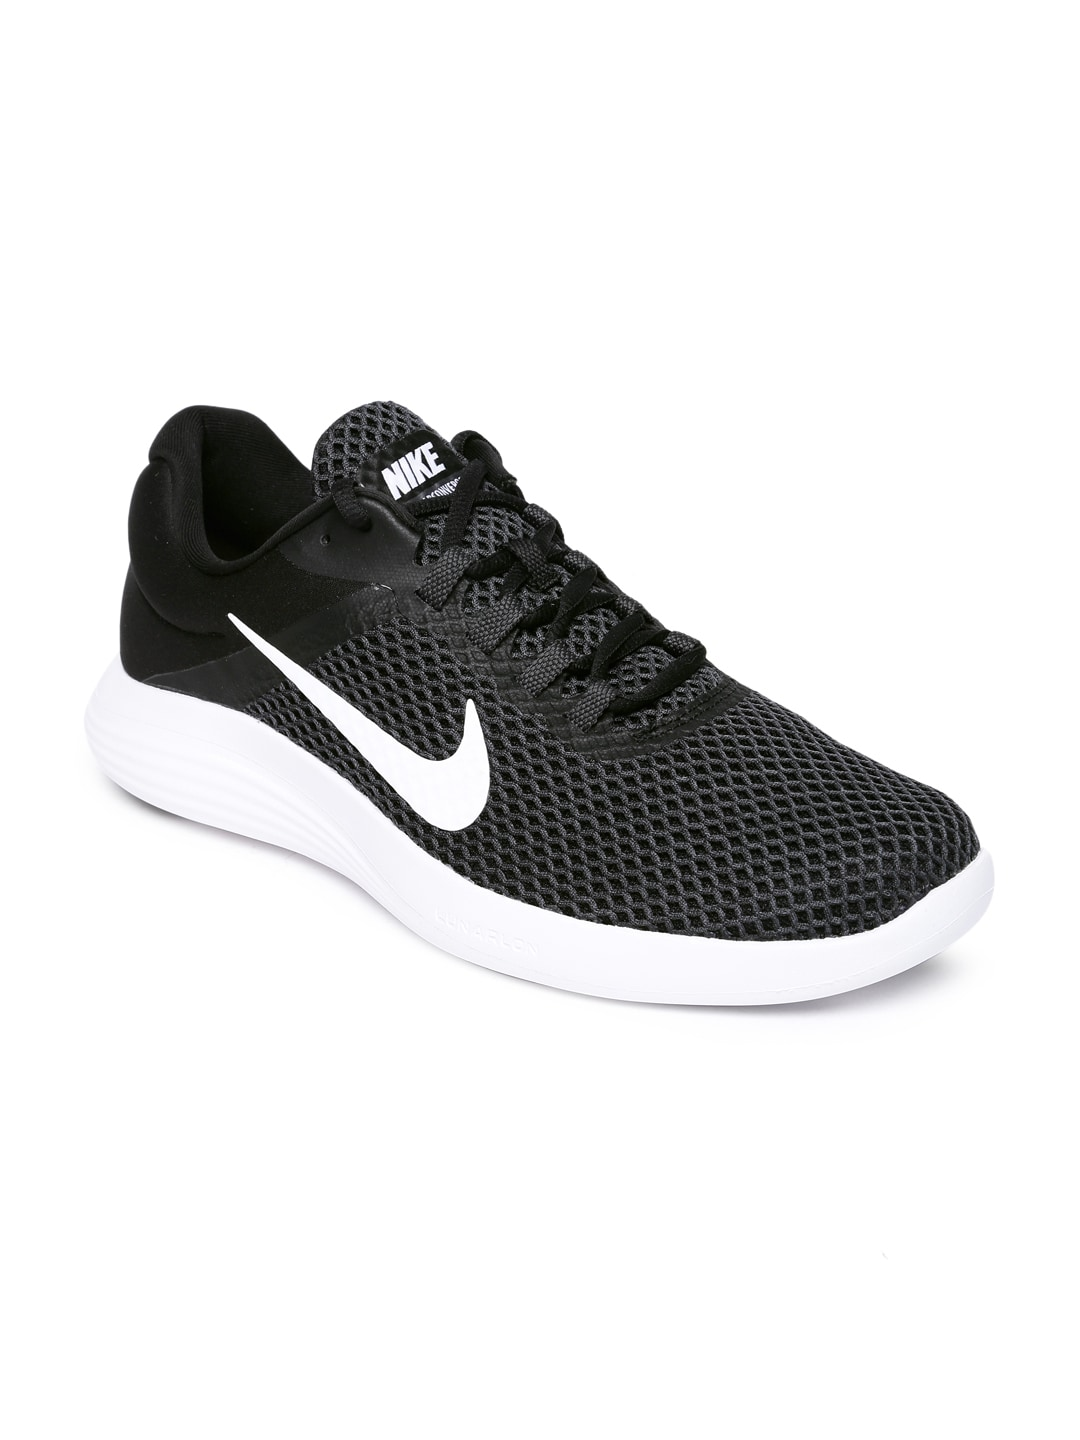 buy popular 6a6f8 288de Nike Running Shoes - Buy Nike Running Shoes Online   Myntra